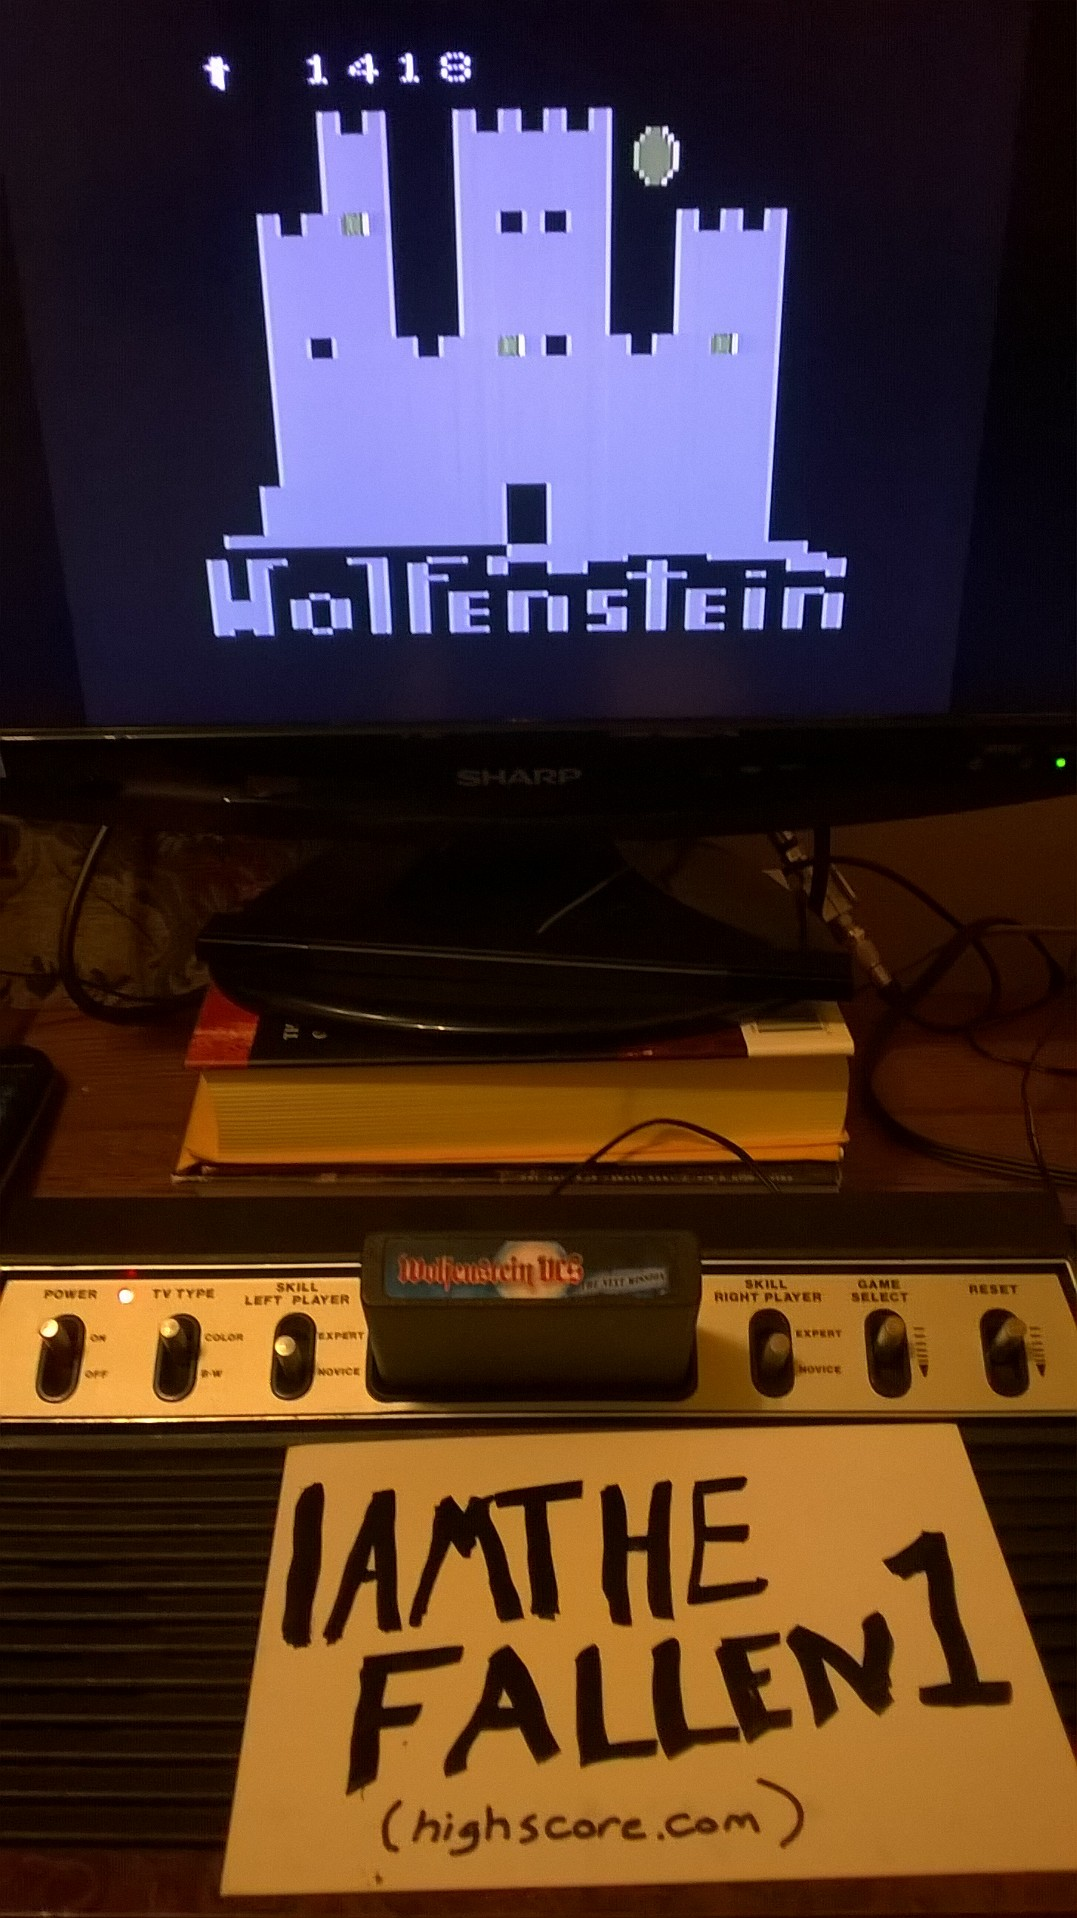 iamthefallen1: Wolfenstein VCS (Atari 2600 Novice/B) 1,418 points on 2017-03-07 15:42:08